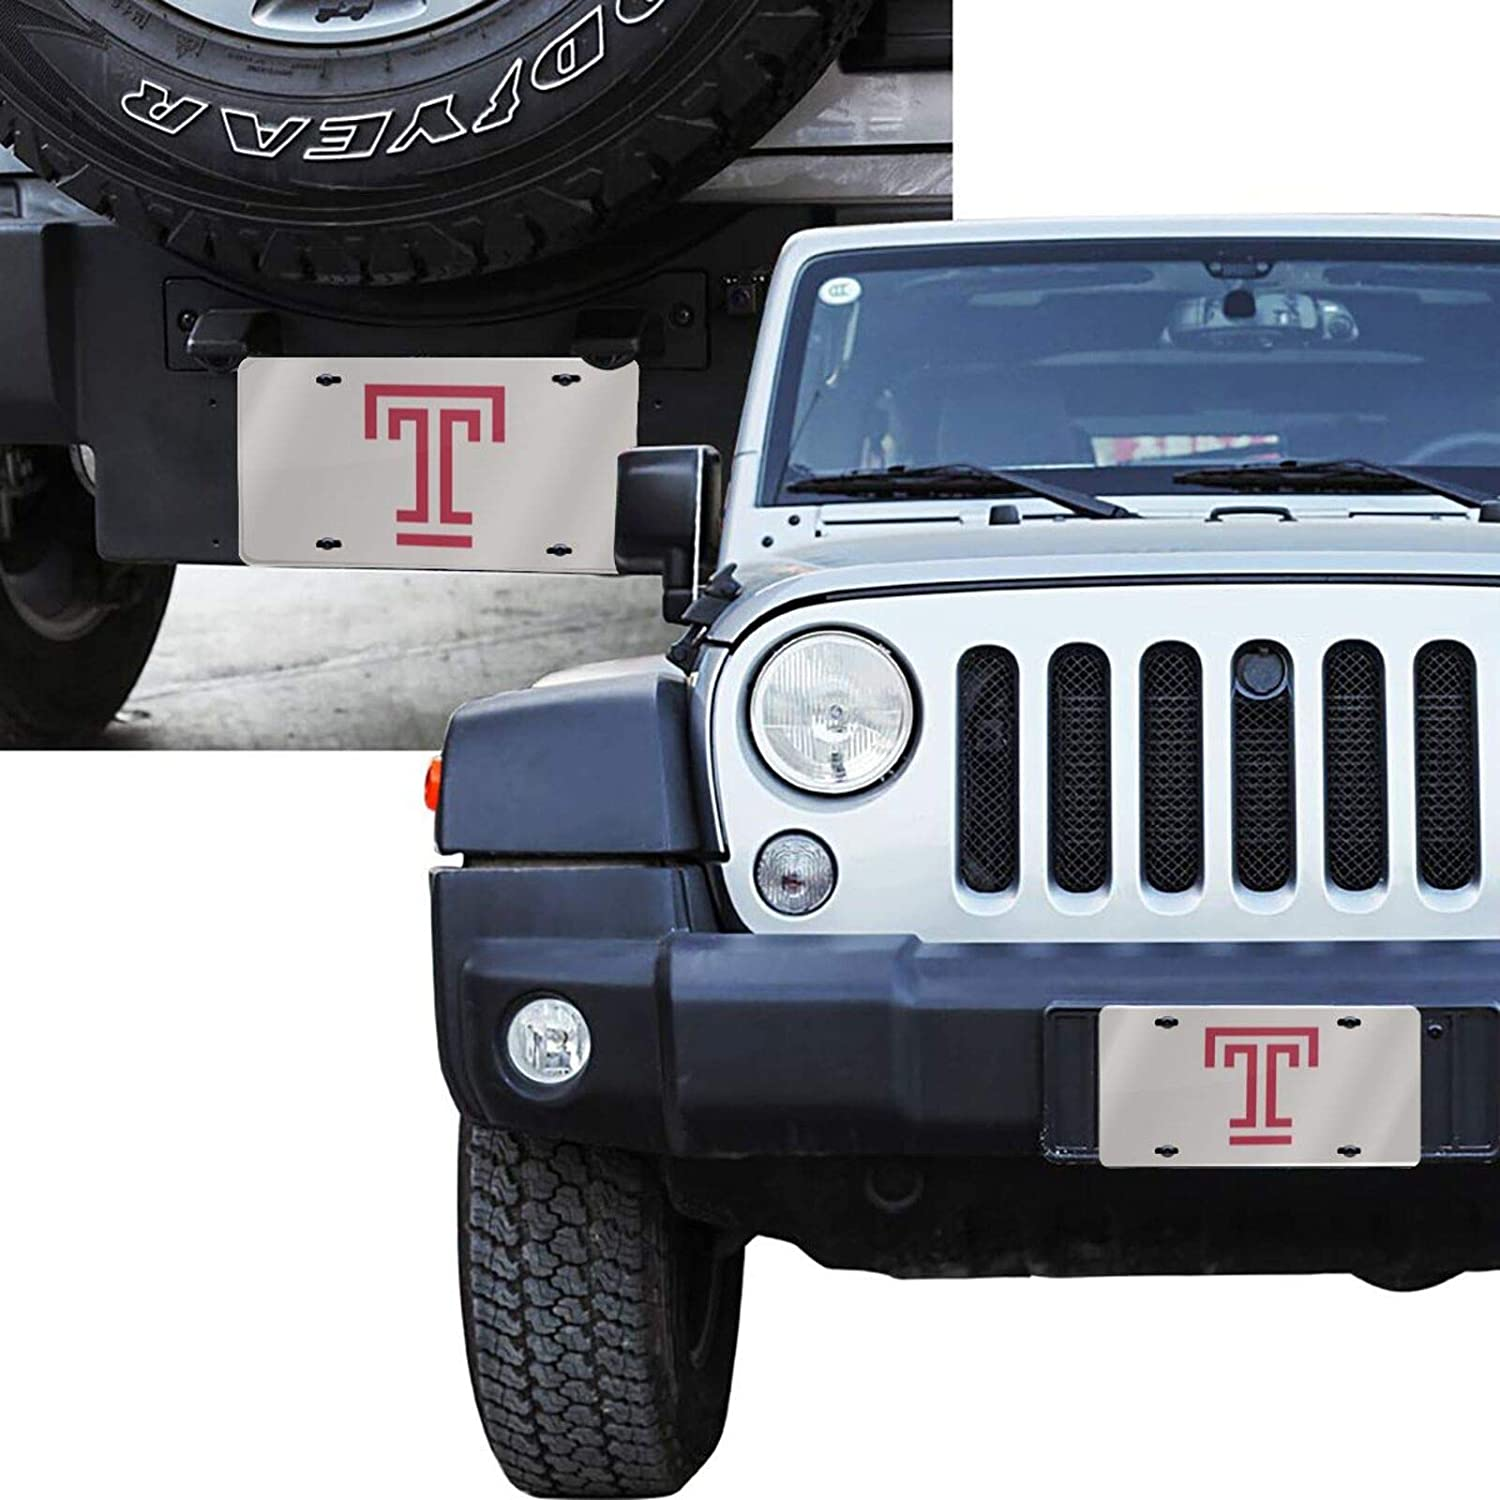 Amacgc Te-Mple University Durable and Strong Aluminum Car License Plate 6inch X 12inch